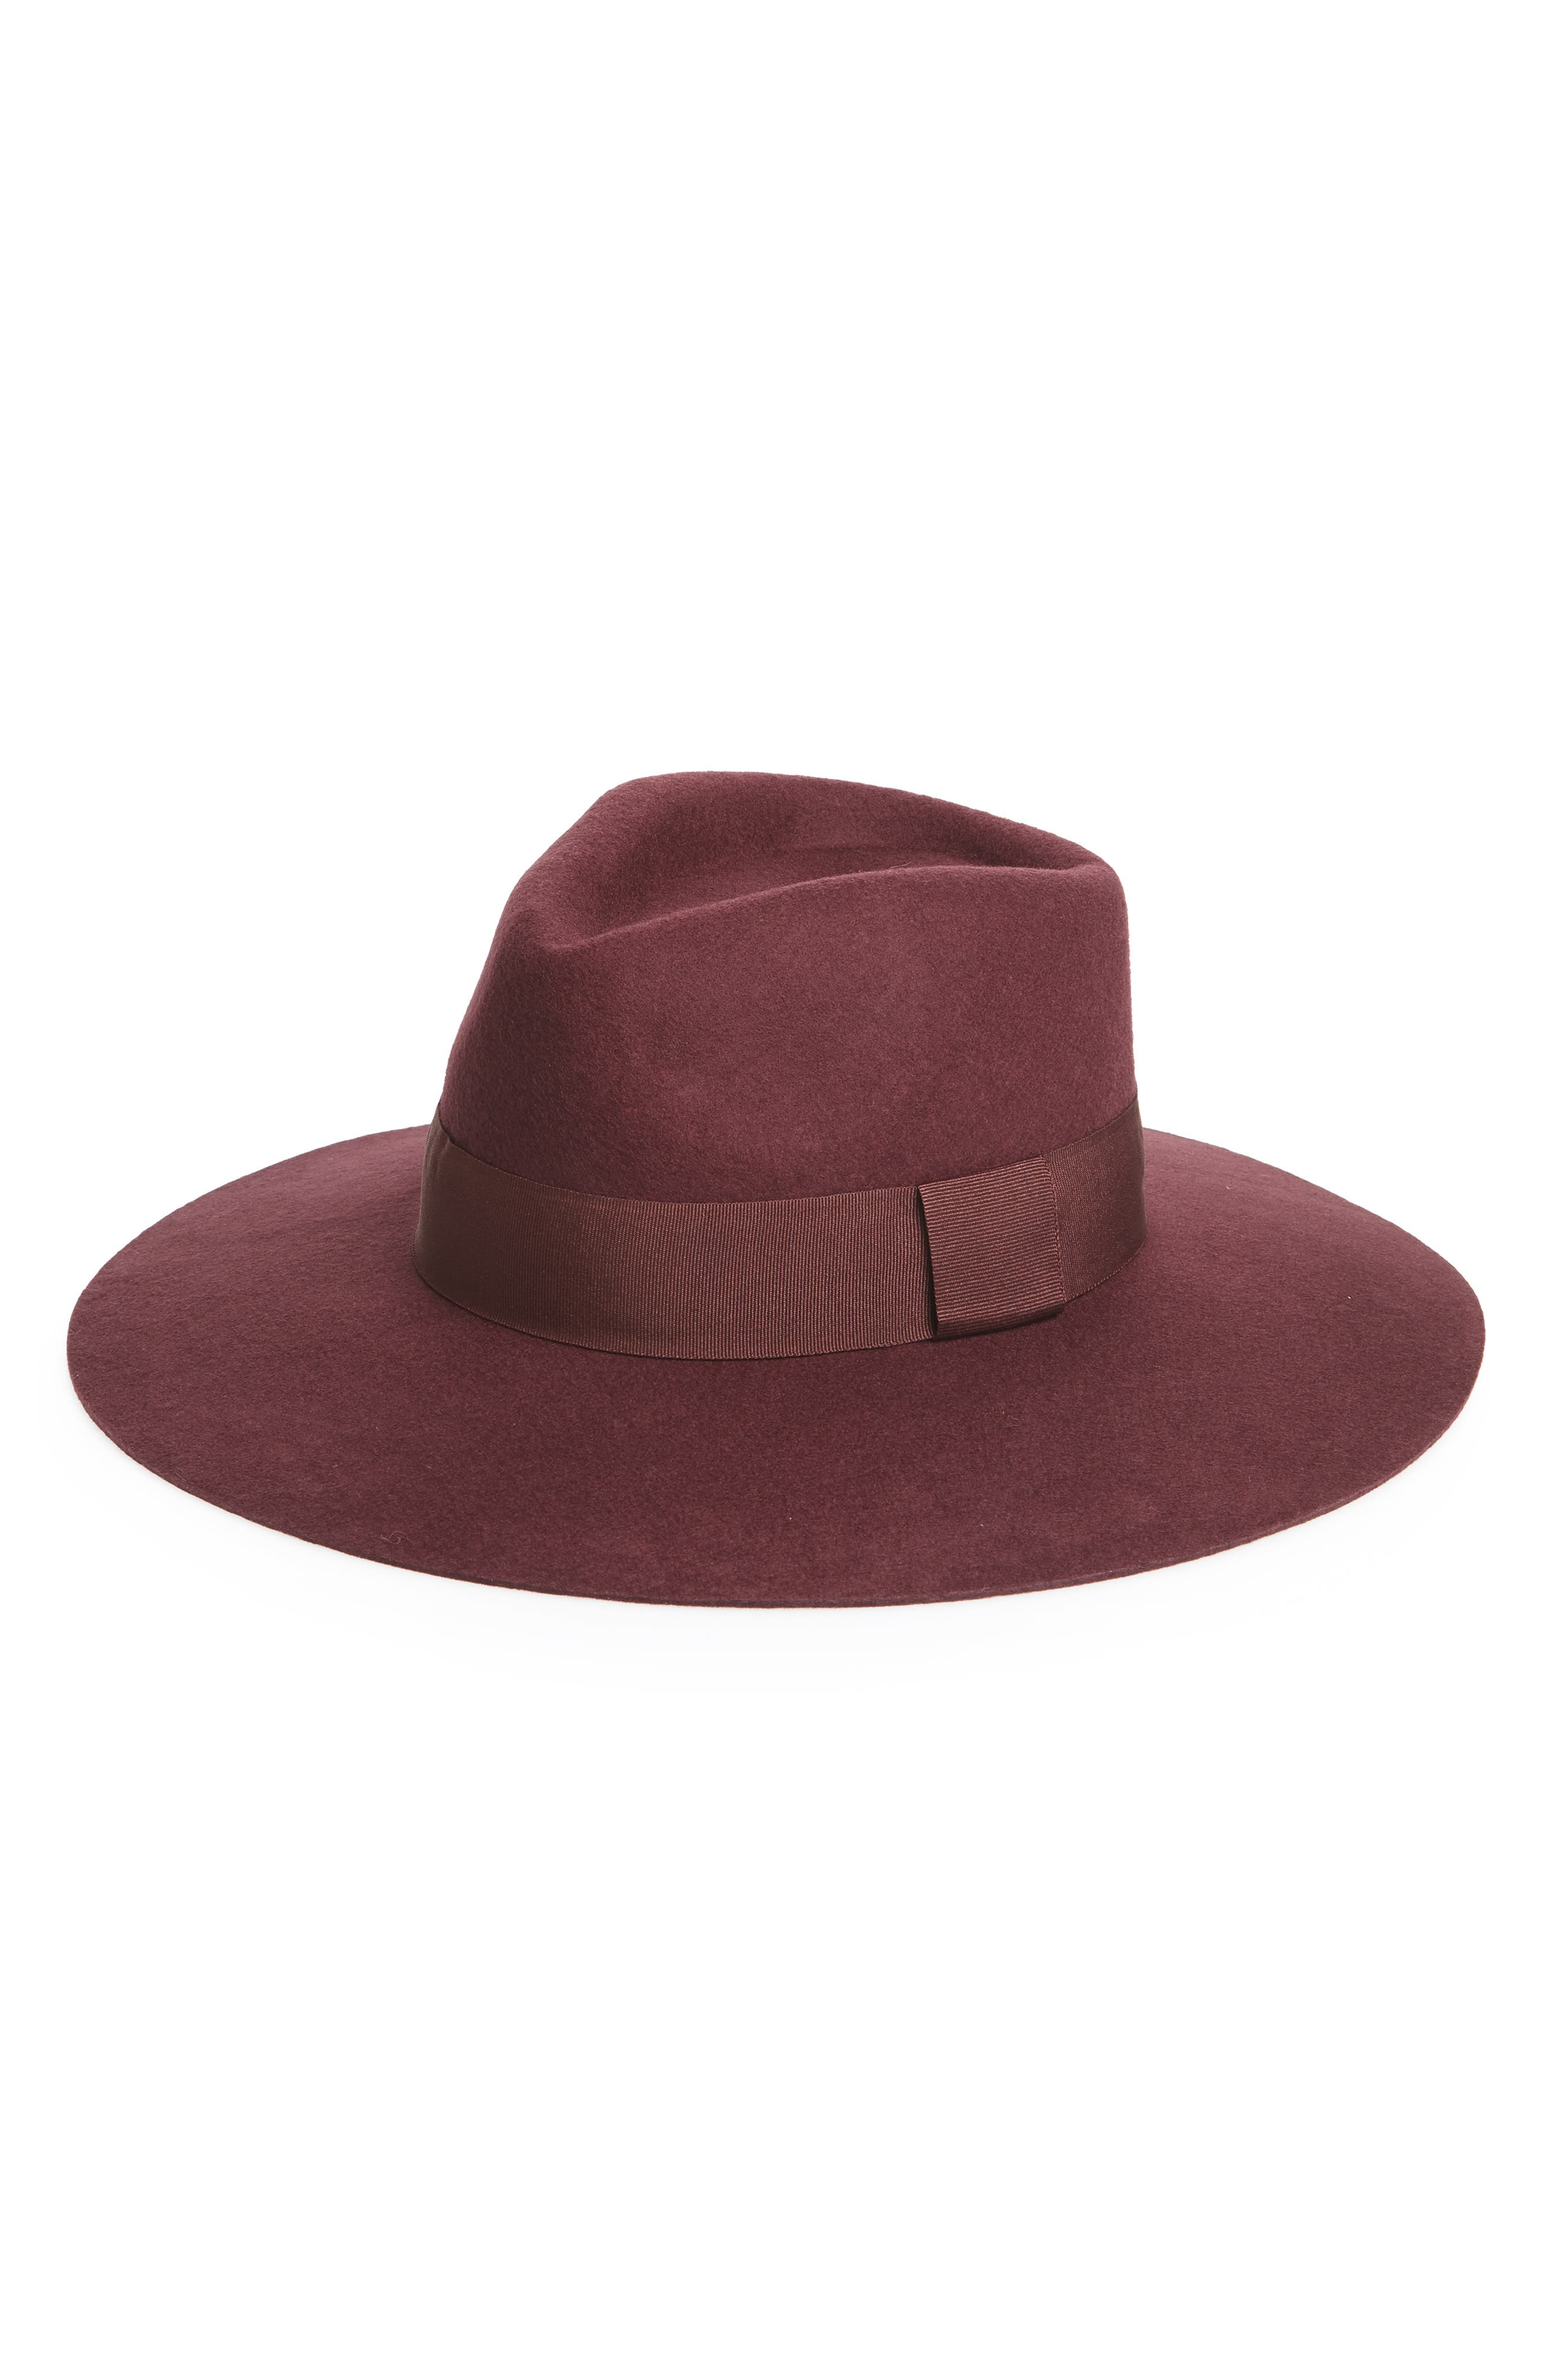 Wool Panama Hat,                             Main thumbnail 1, color,